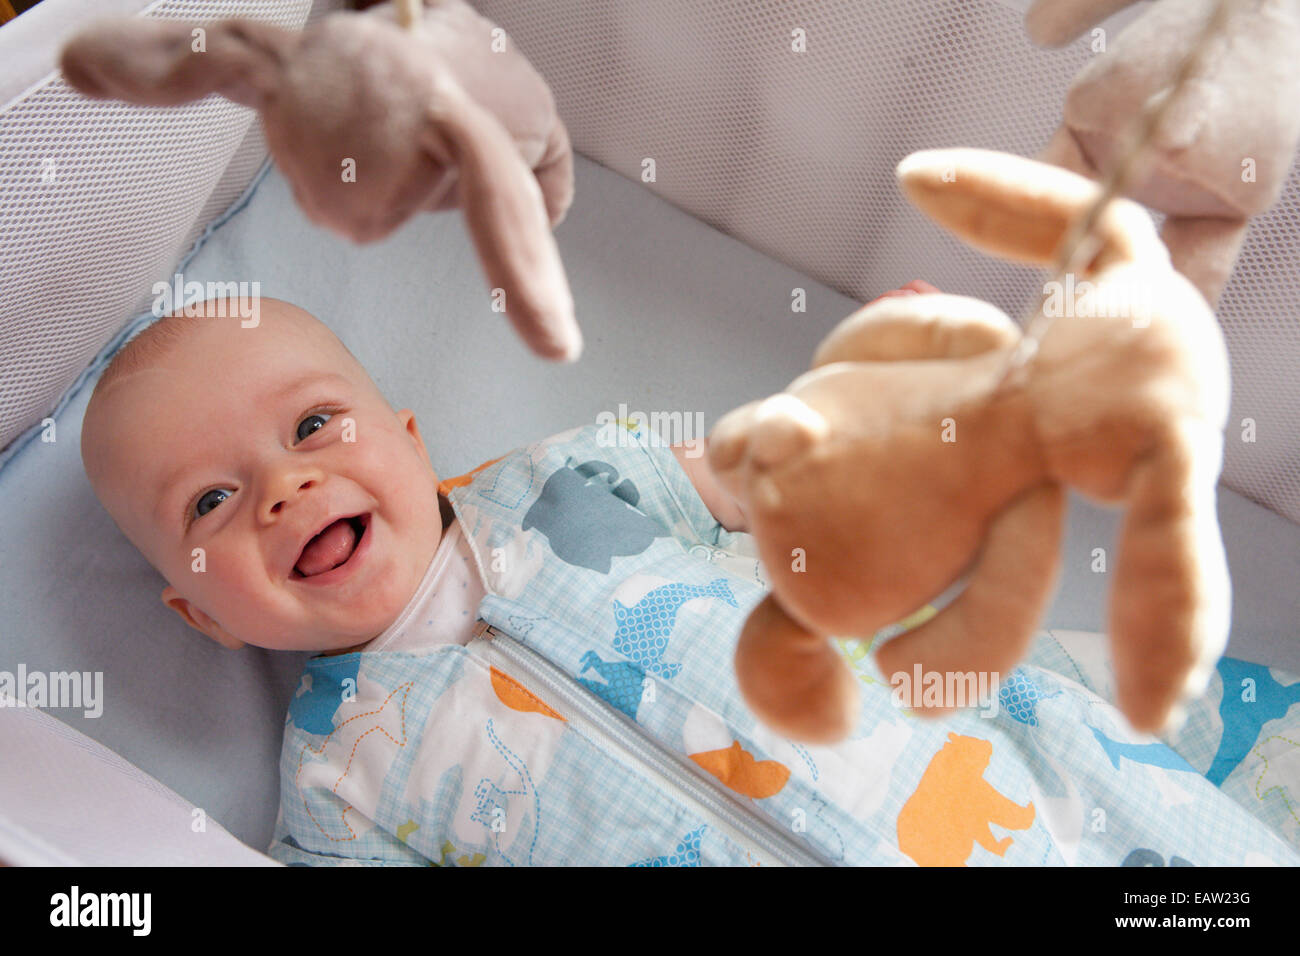 Baby in cot laughing - Stock Image